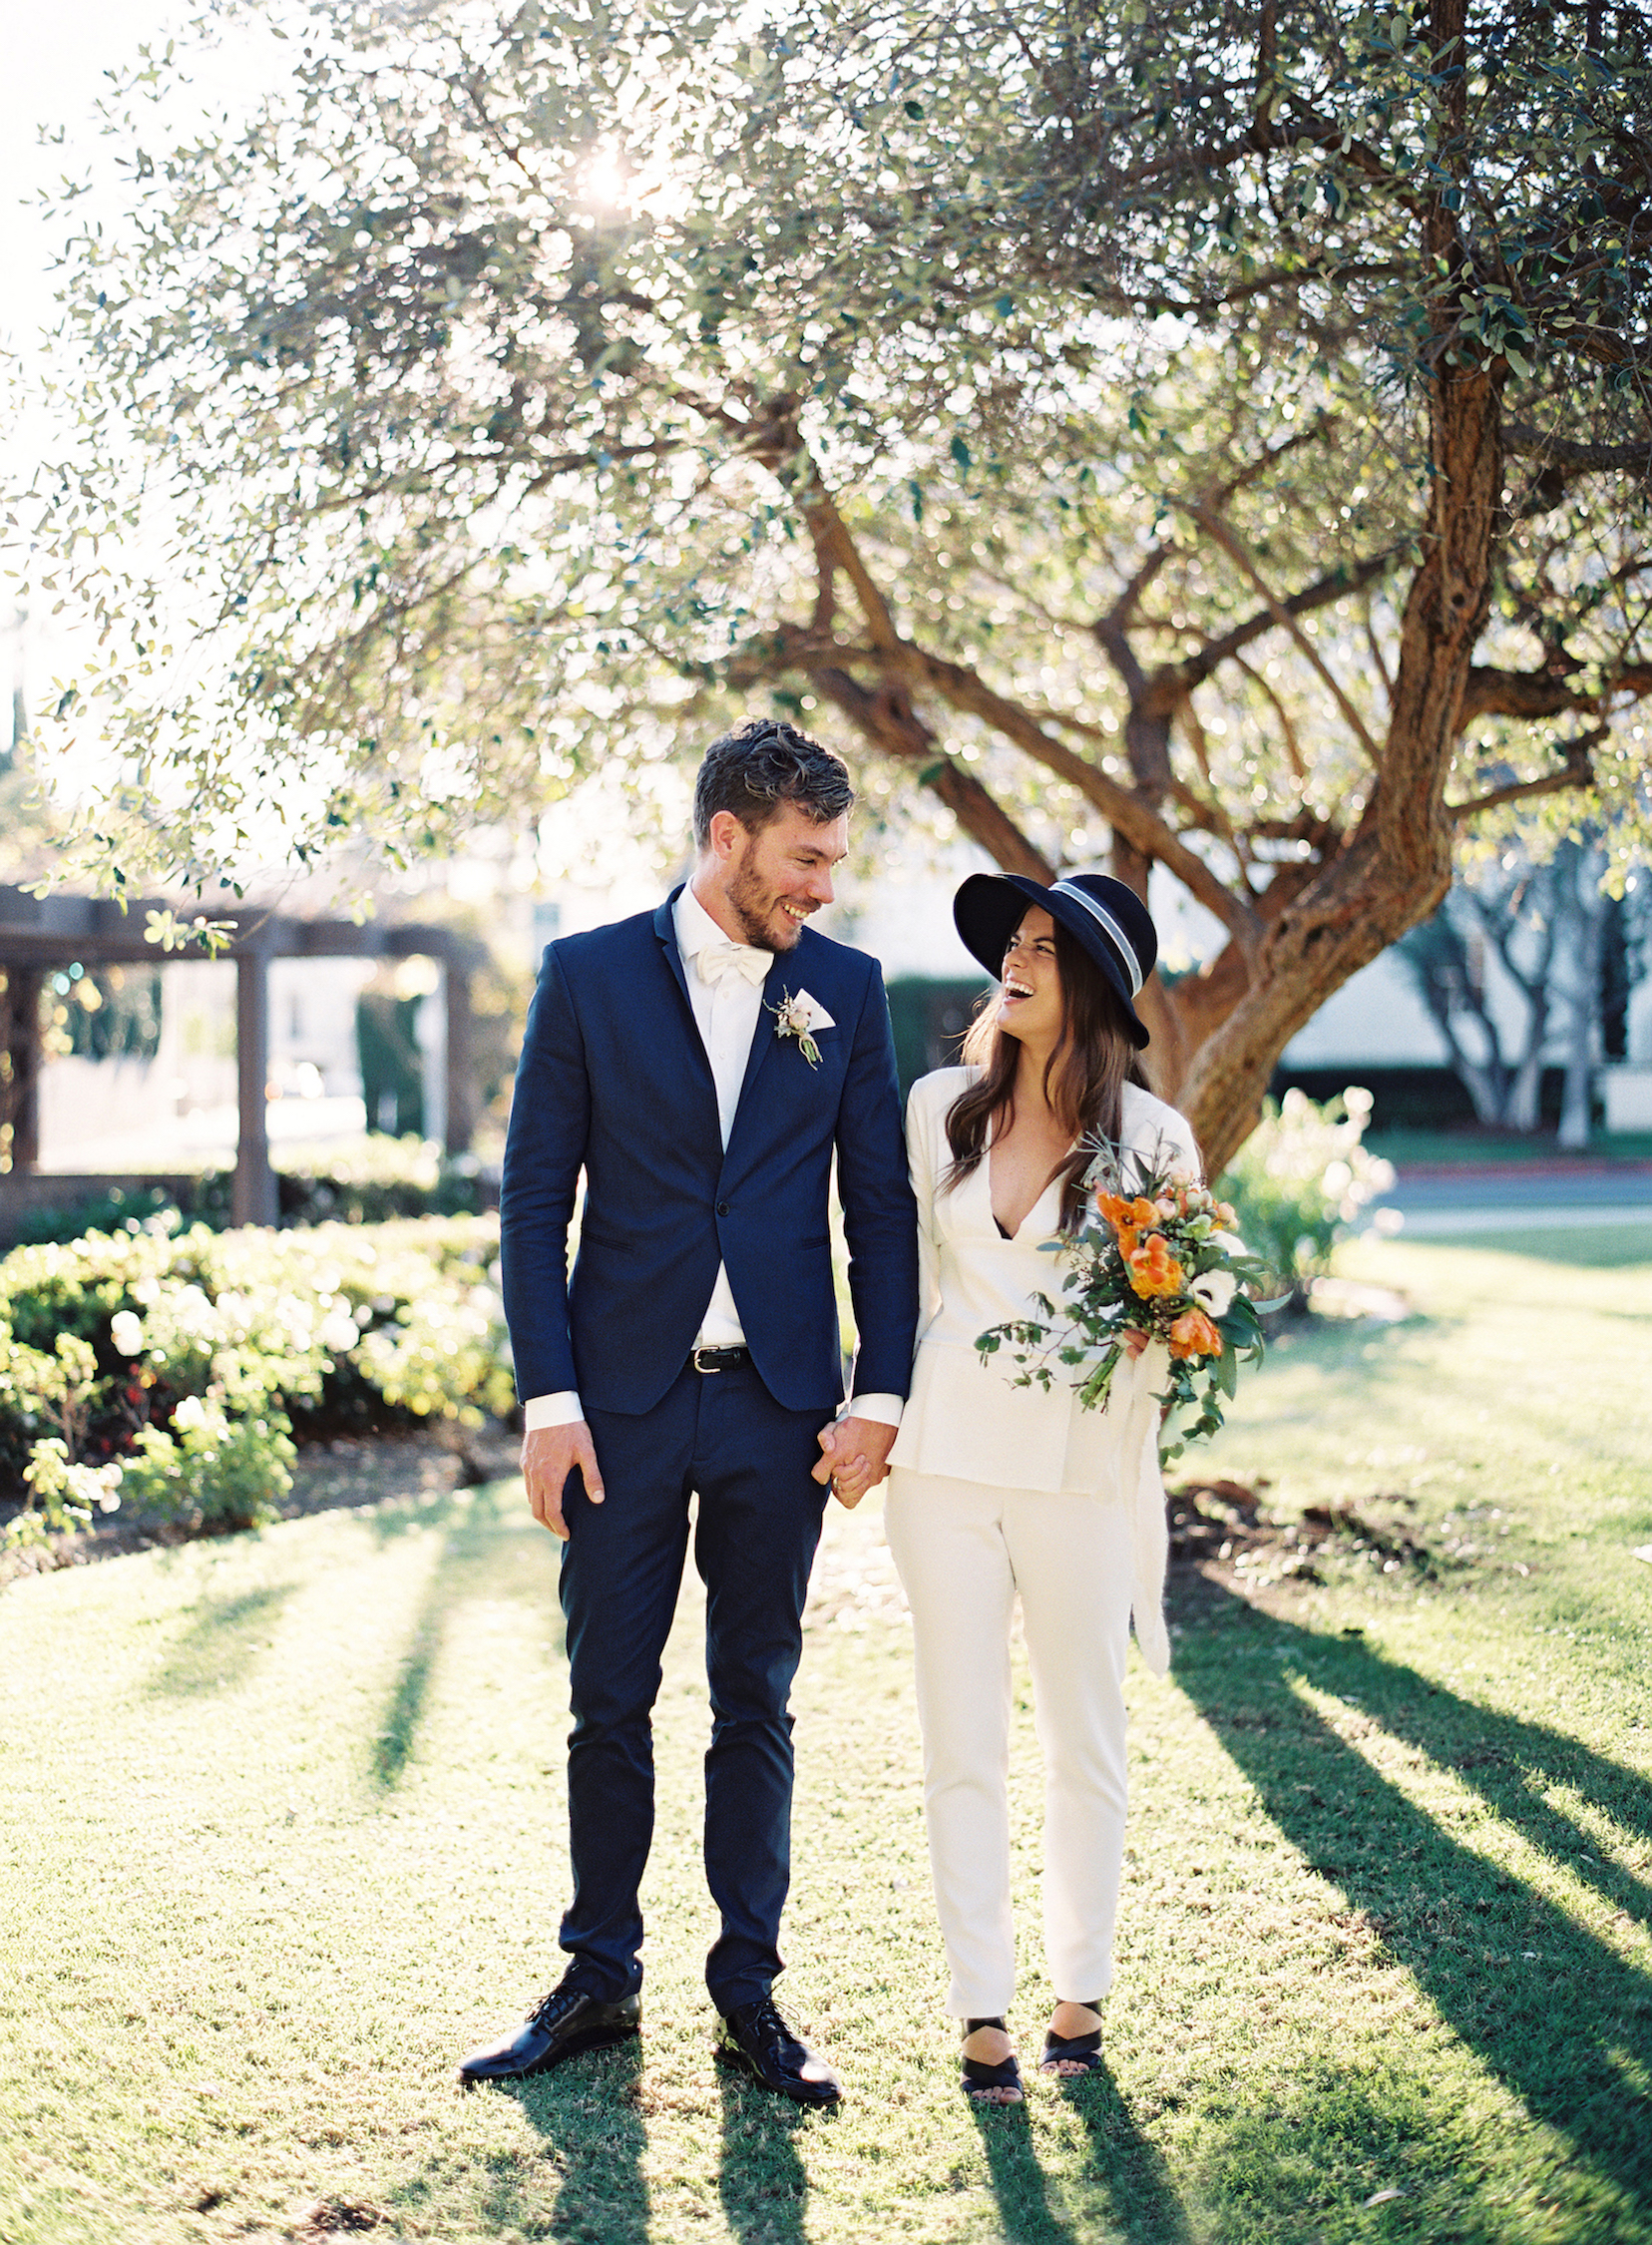 Bride in a Pantsuit Holding the Groom's Hand